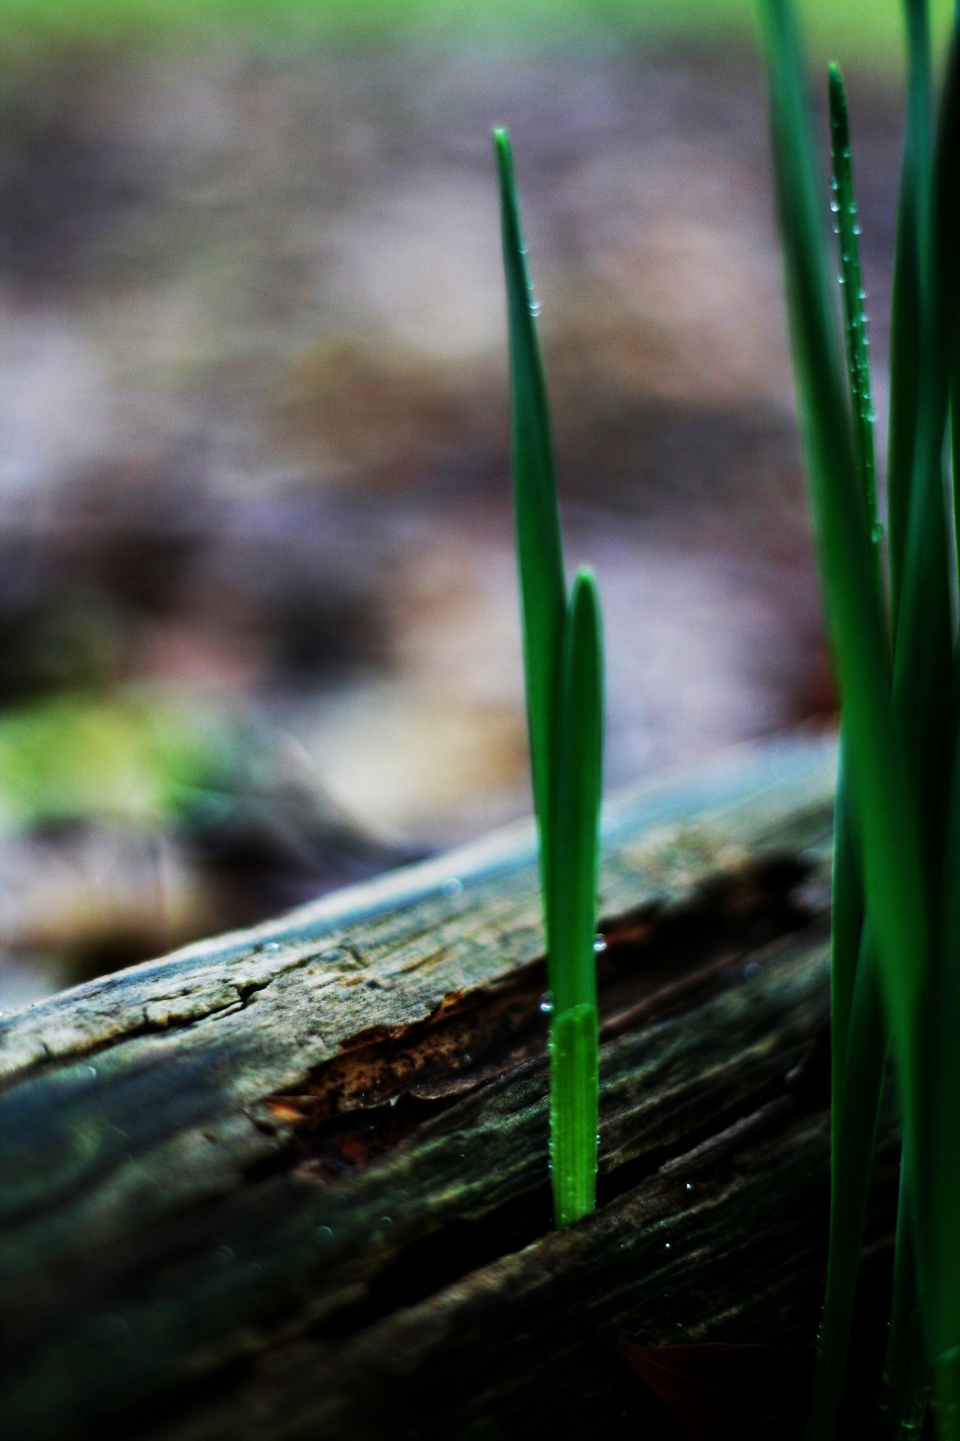 Free stock photo of plant growth